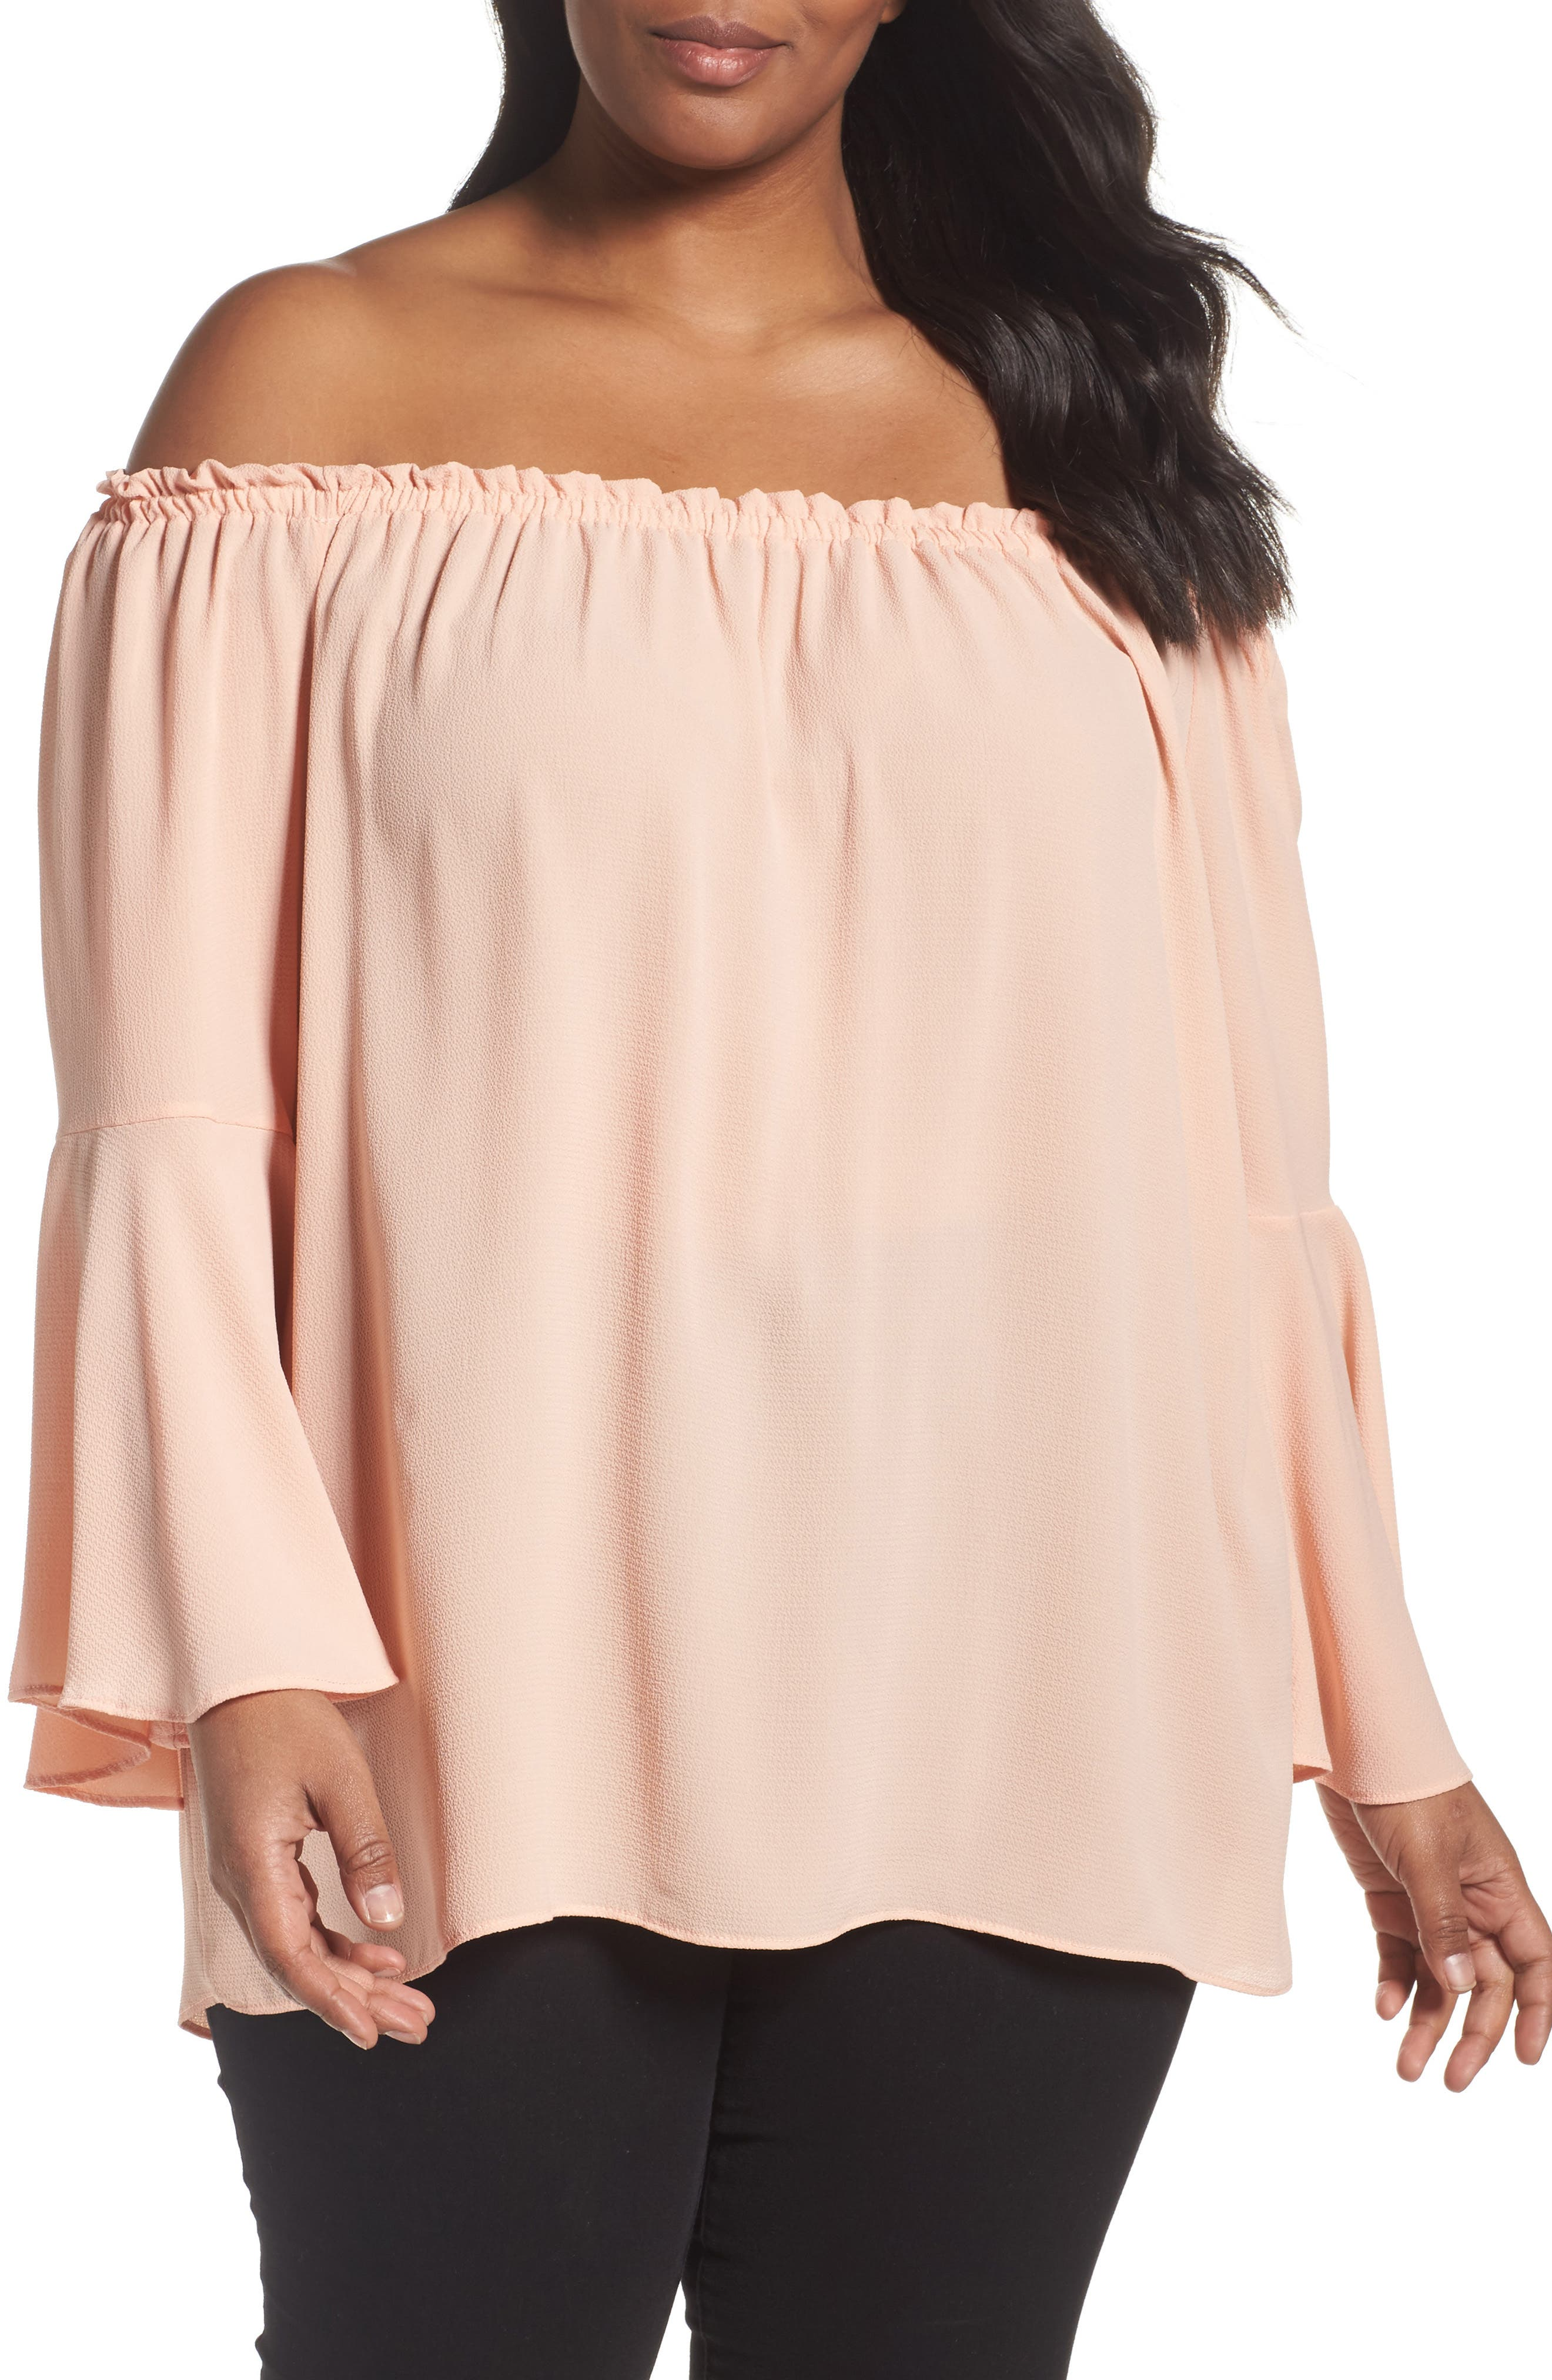 Alternate Image 1 Selected - Bobeau Bell Sleeve Off the Shoulder Top (Plus Size)